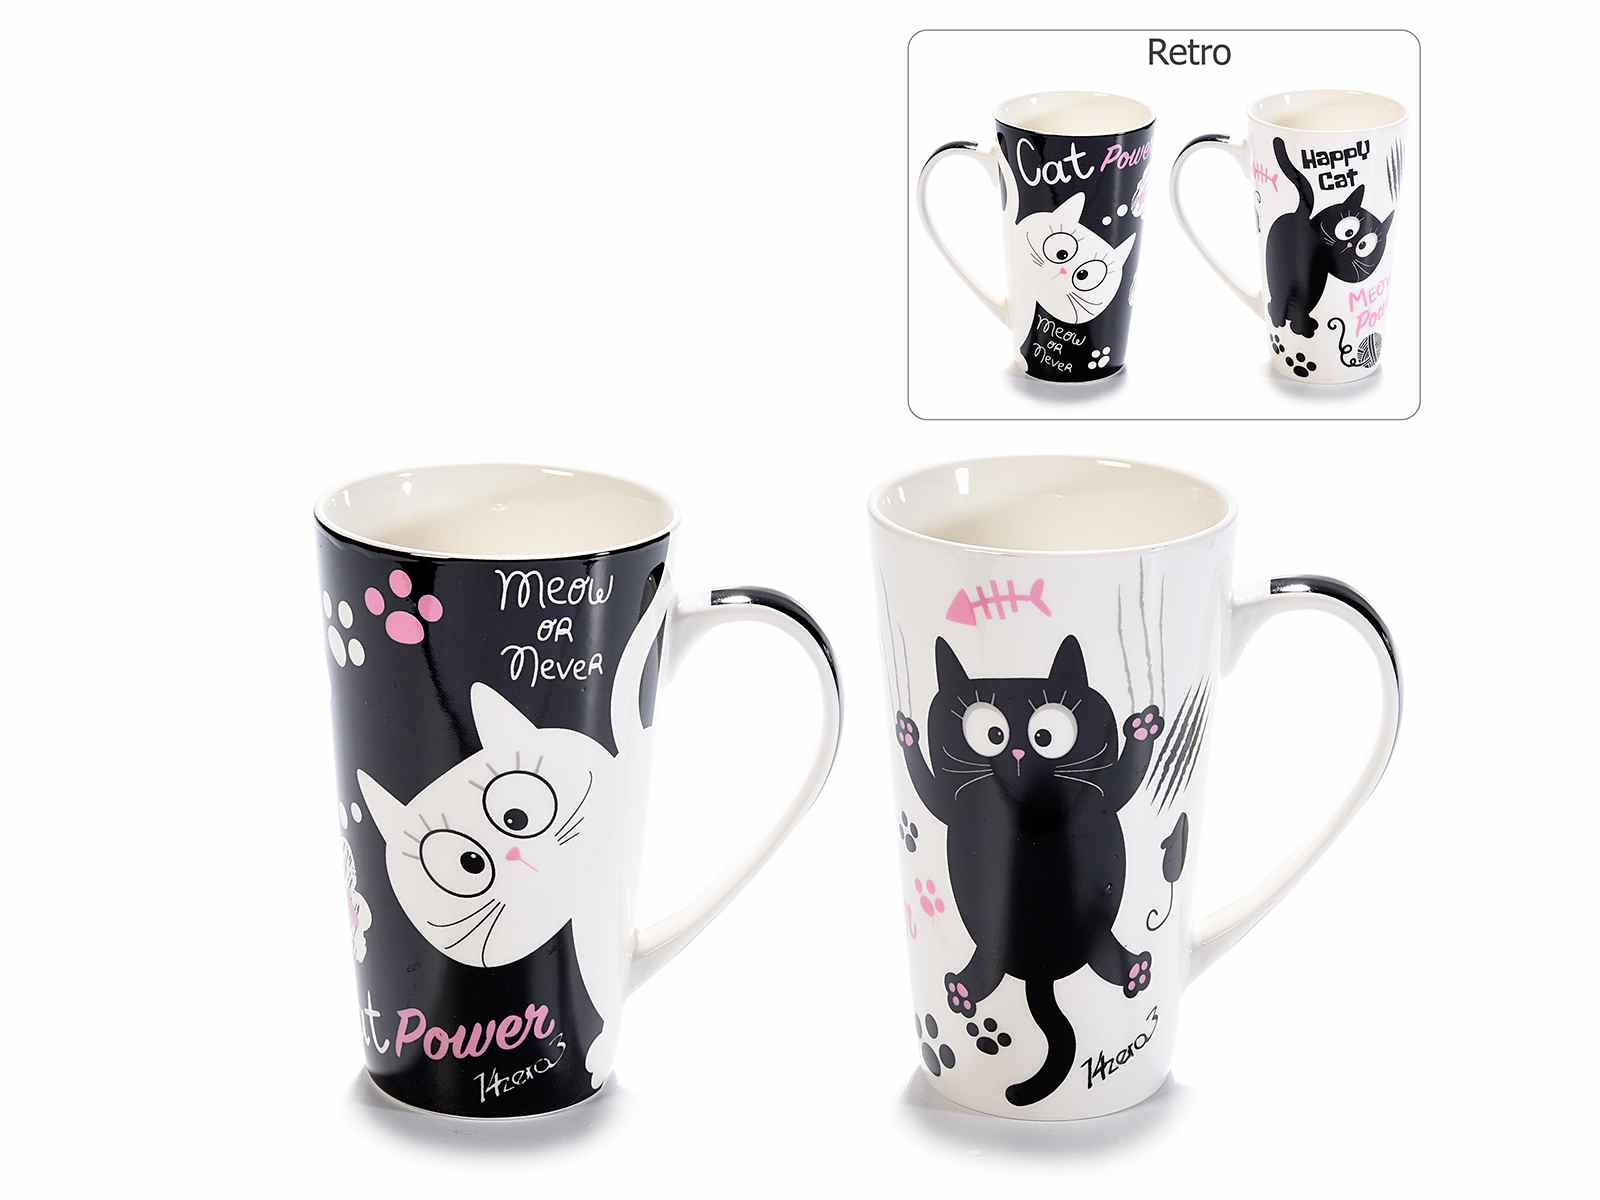 Tazze mug in porcellana con design Pet Friends  (720671)